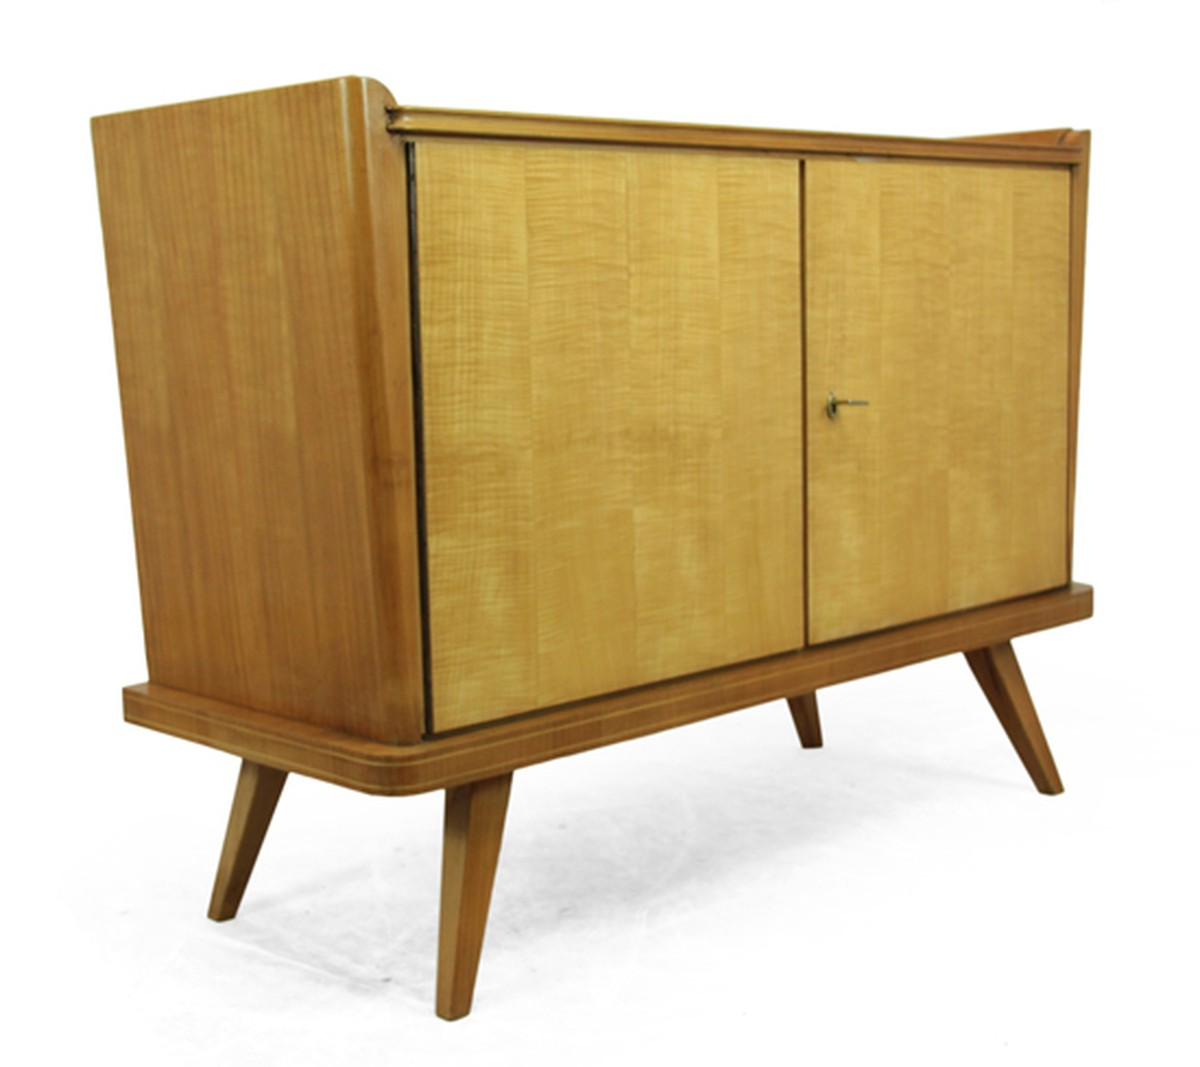 antiques bazaar the old cinema london mid century sideboard london. Black Bedroom Furniture Sets. Home Design Ideas